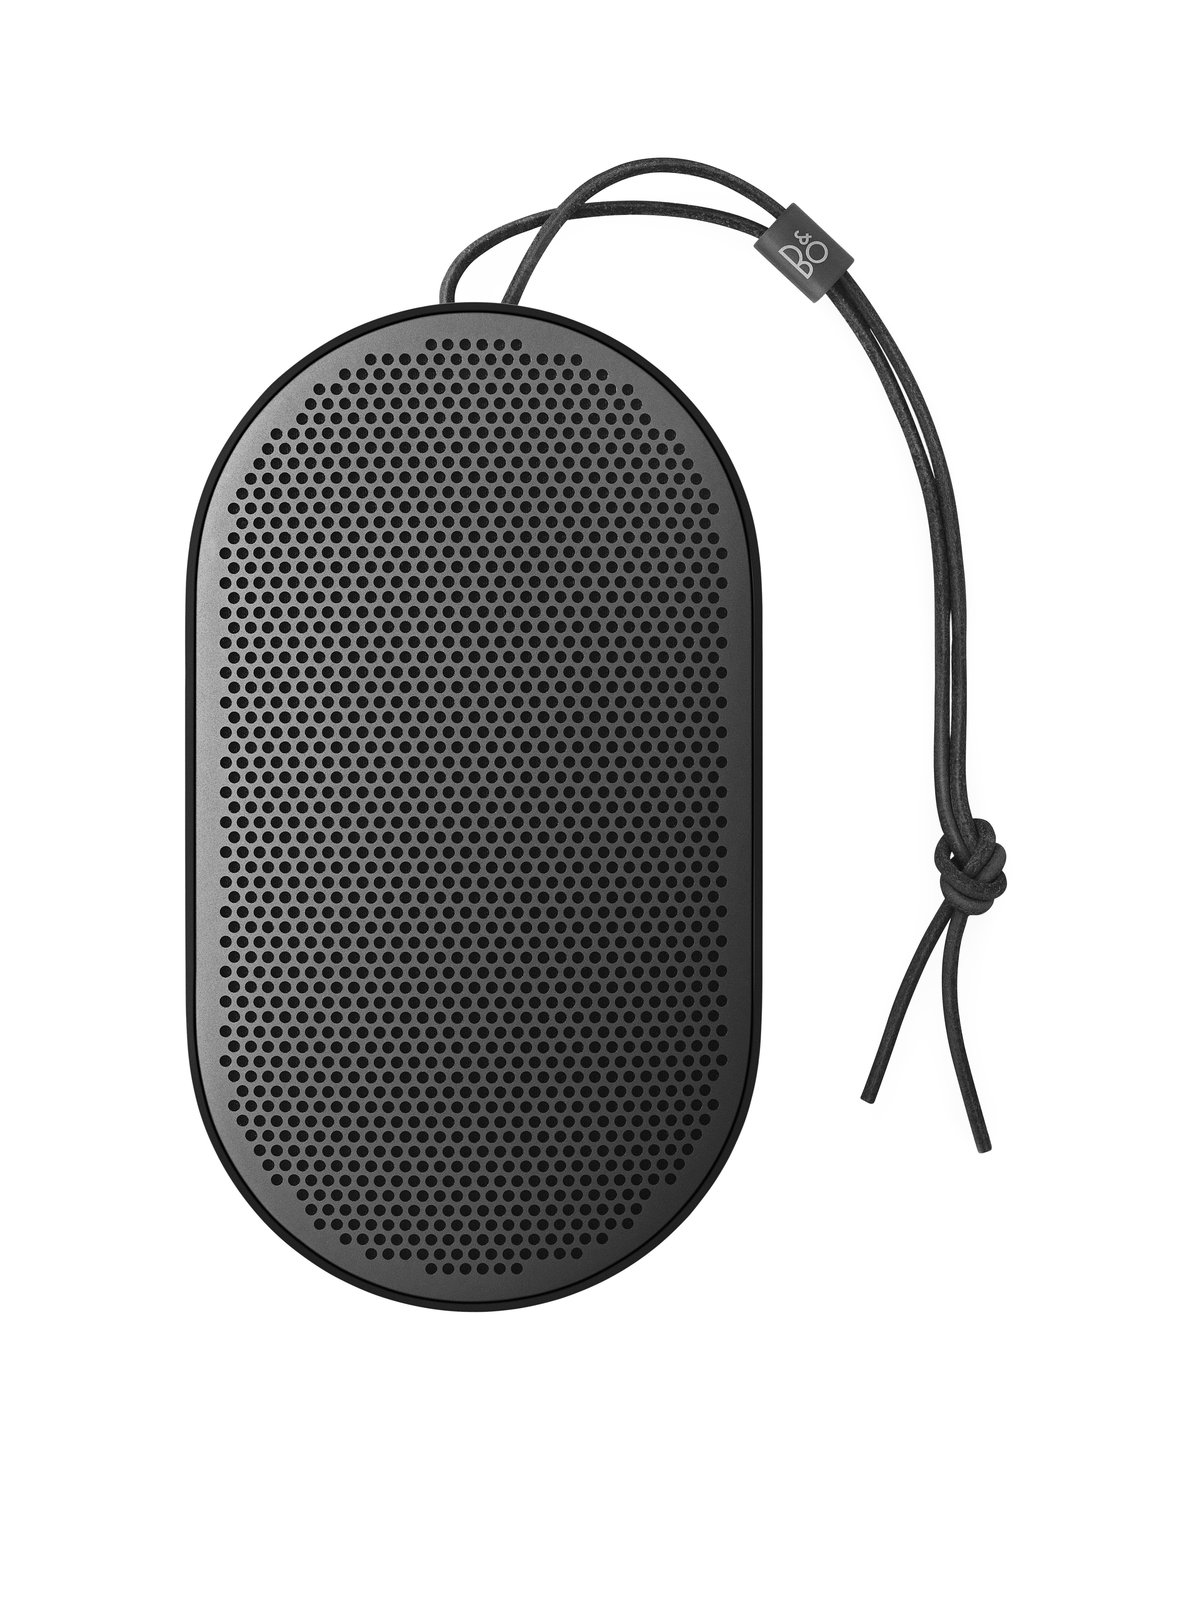 A quick shake or double-tap, customiz- able through the Beo- play app, brings Bang & Olufsen's renowned sound quality out of the Beoplay P2 Blue- tooth speaker ($169). The frame is water and dirt resistant—great for seaside excursions.  Photo 23 of 24 in 24 Outdoor Products for Every Kind of Summer Plan